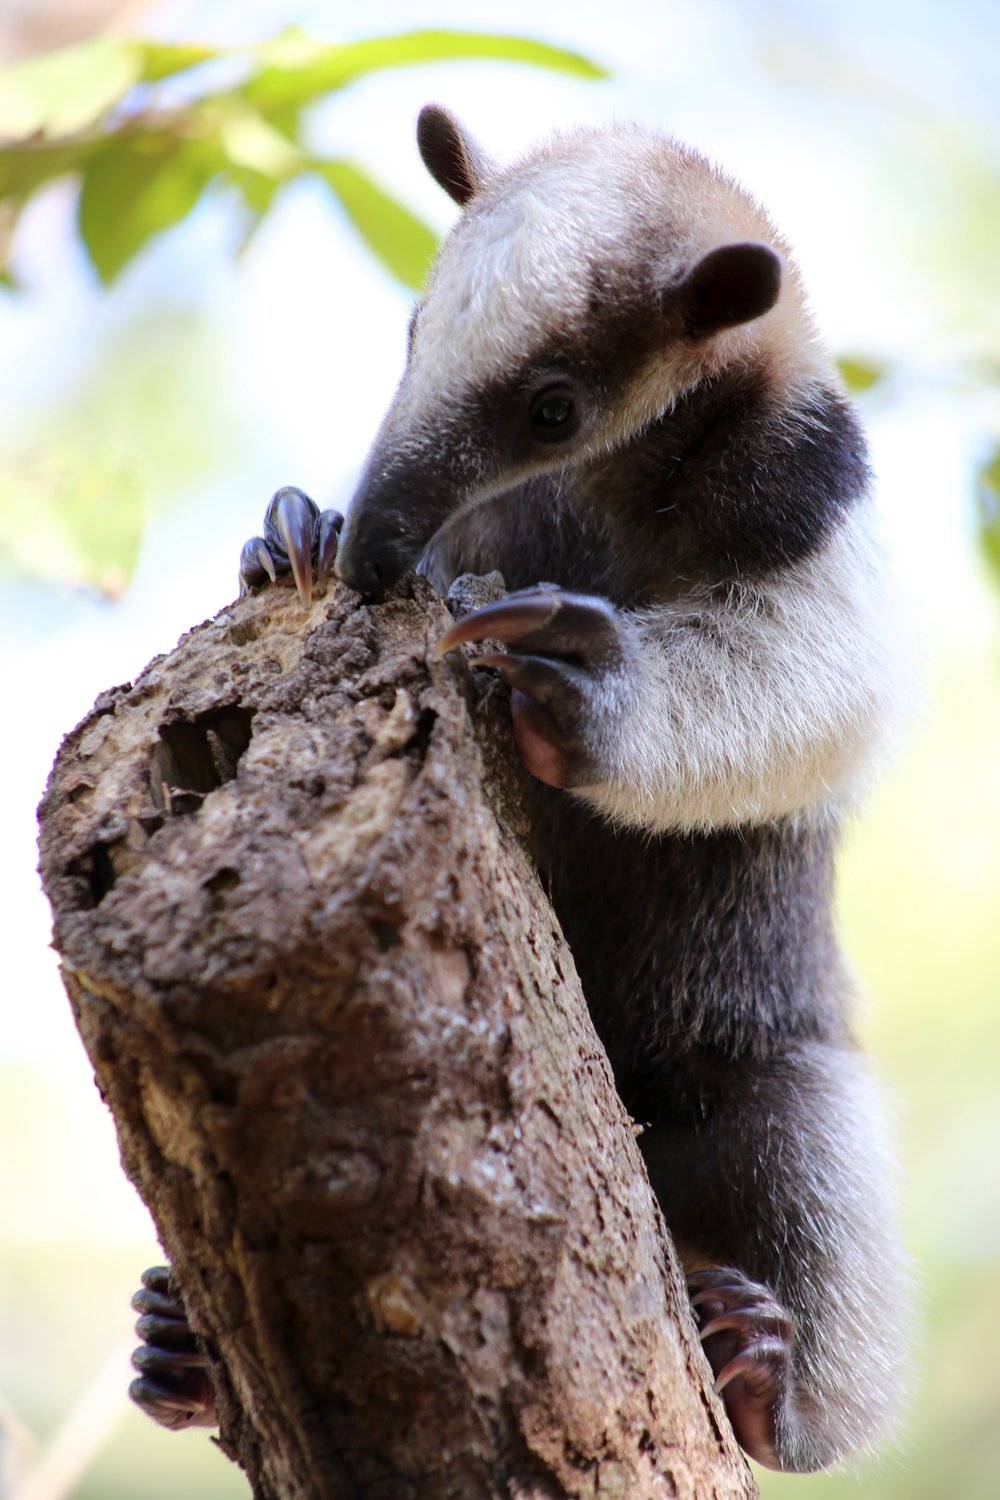 Anteater close up eating.jpg